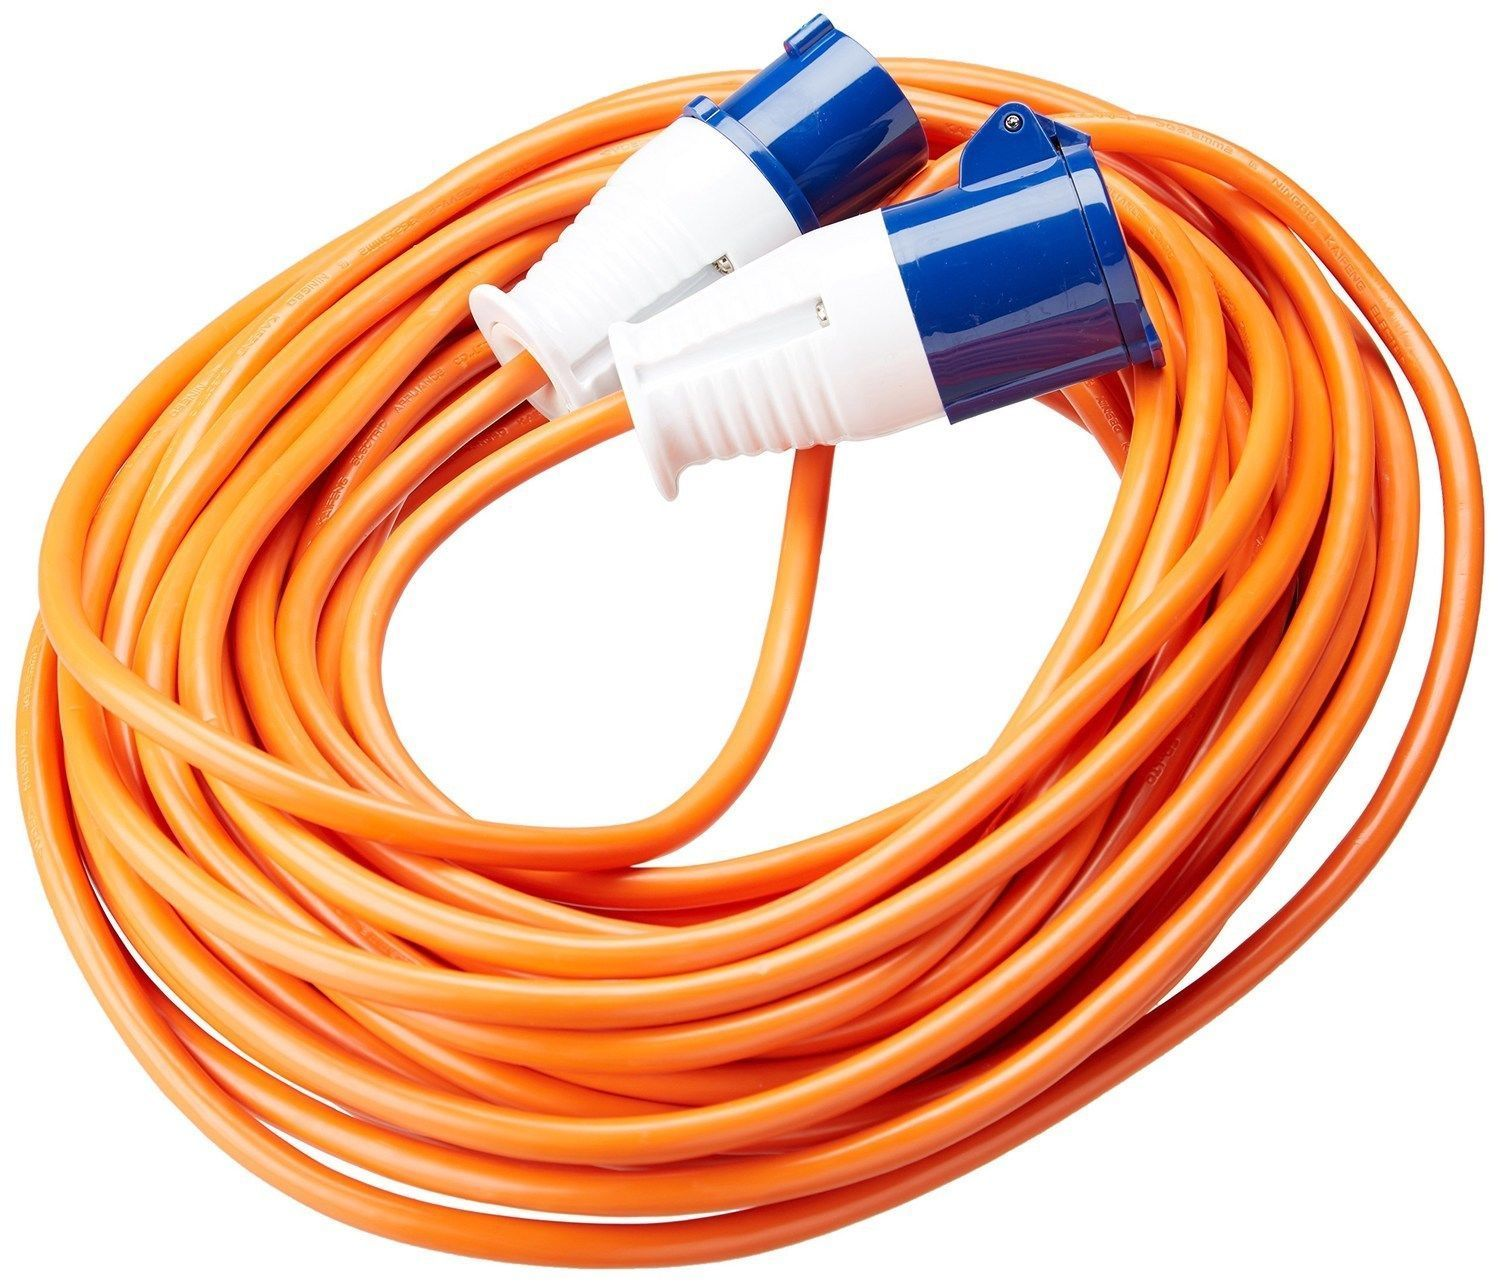 25m Mains Cable - £33.00